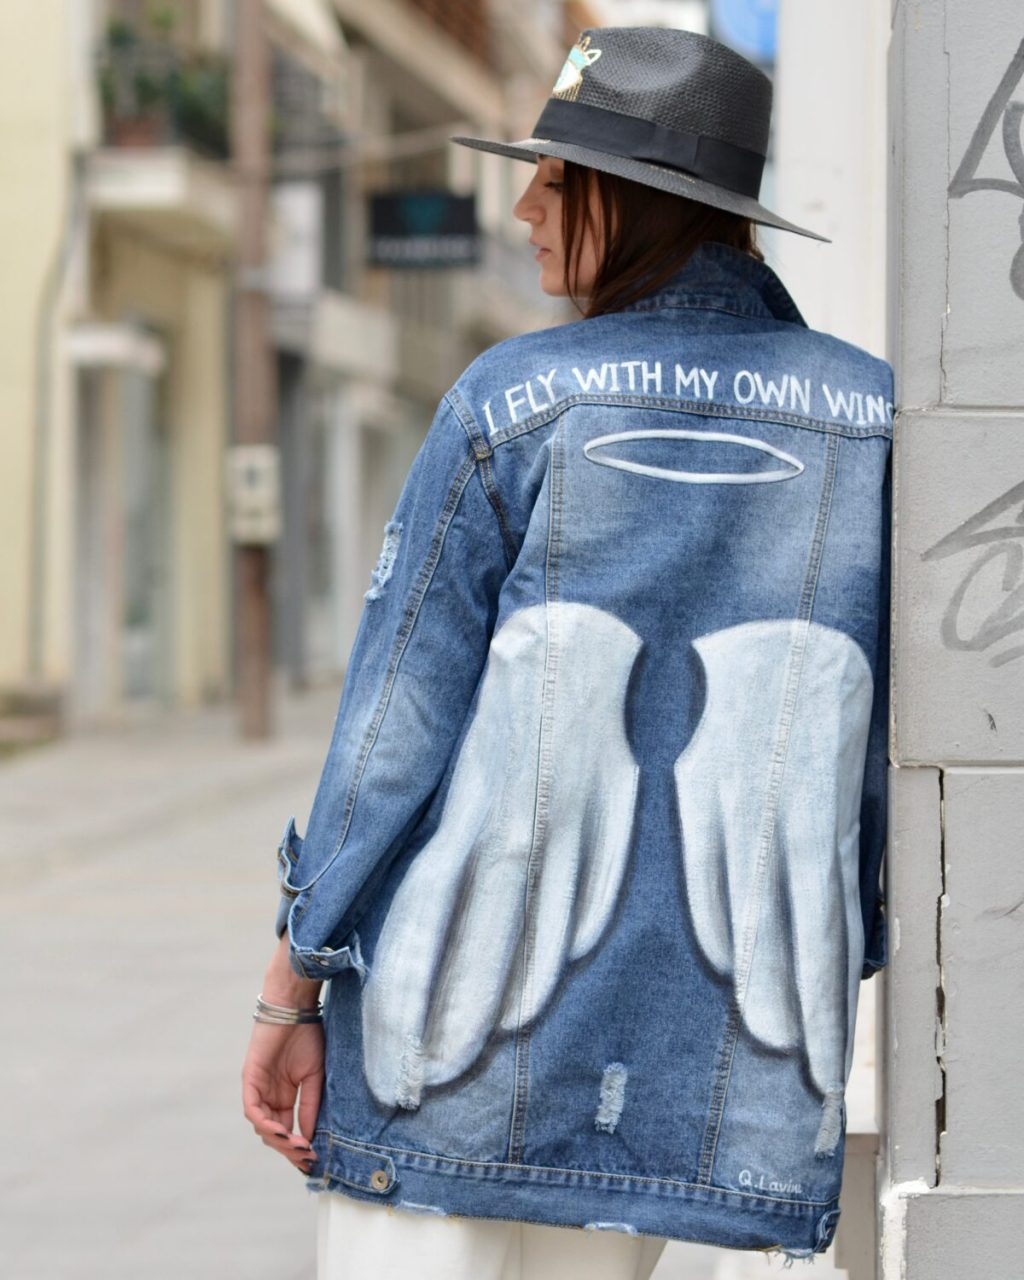 Collection Spring - Summer 2021 Q.LAVINE JEAN JACKET ANGEL WINGS